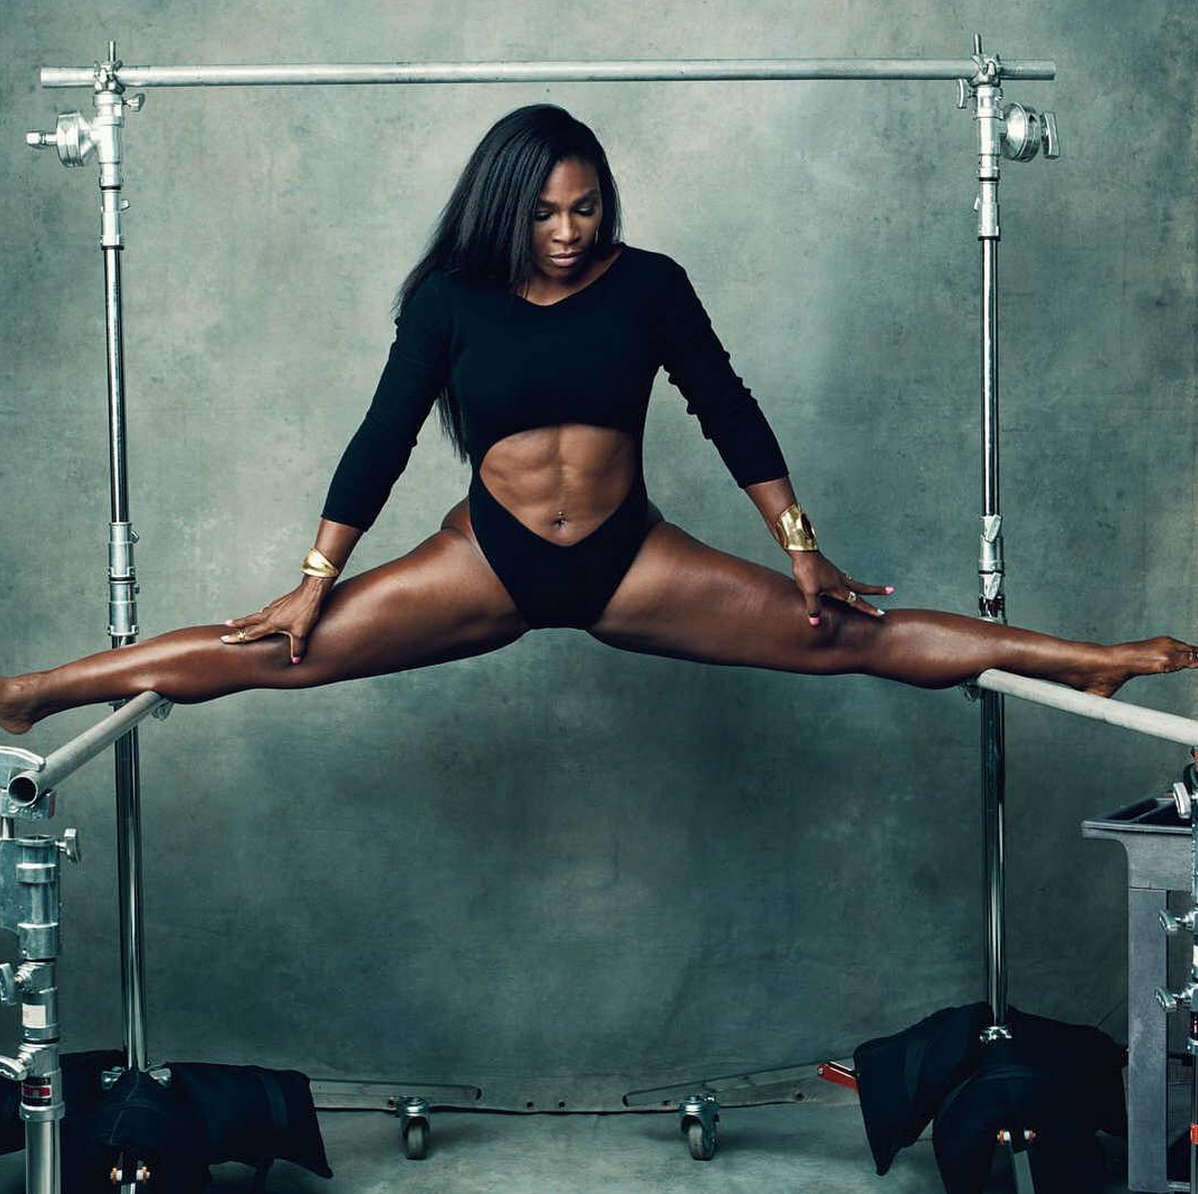 serena williams, tennis, new york magazine, photo shoot, clothing line